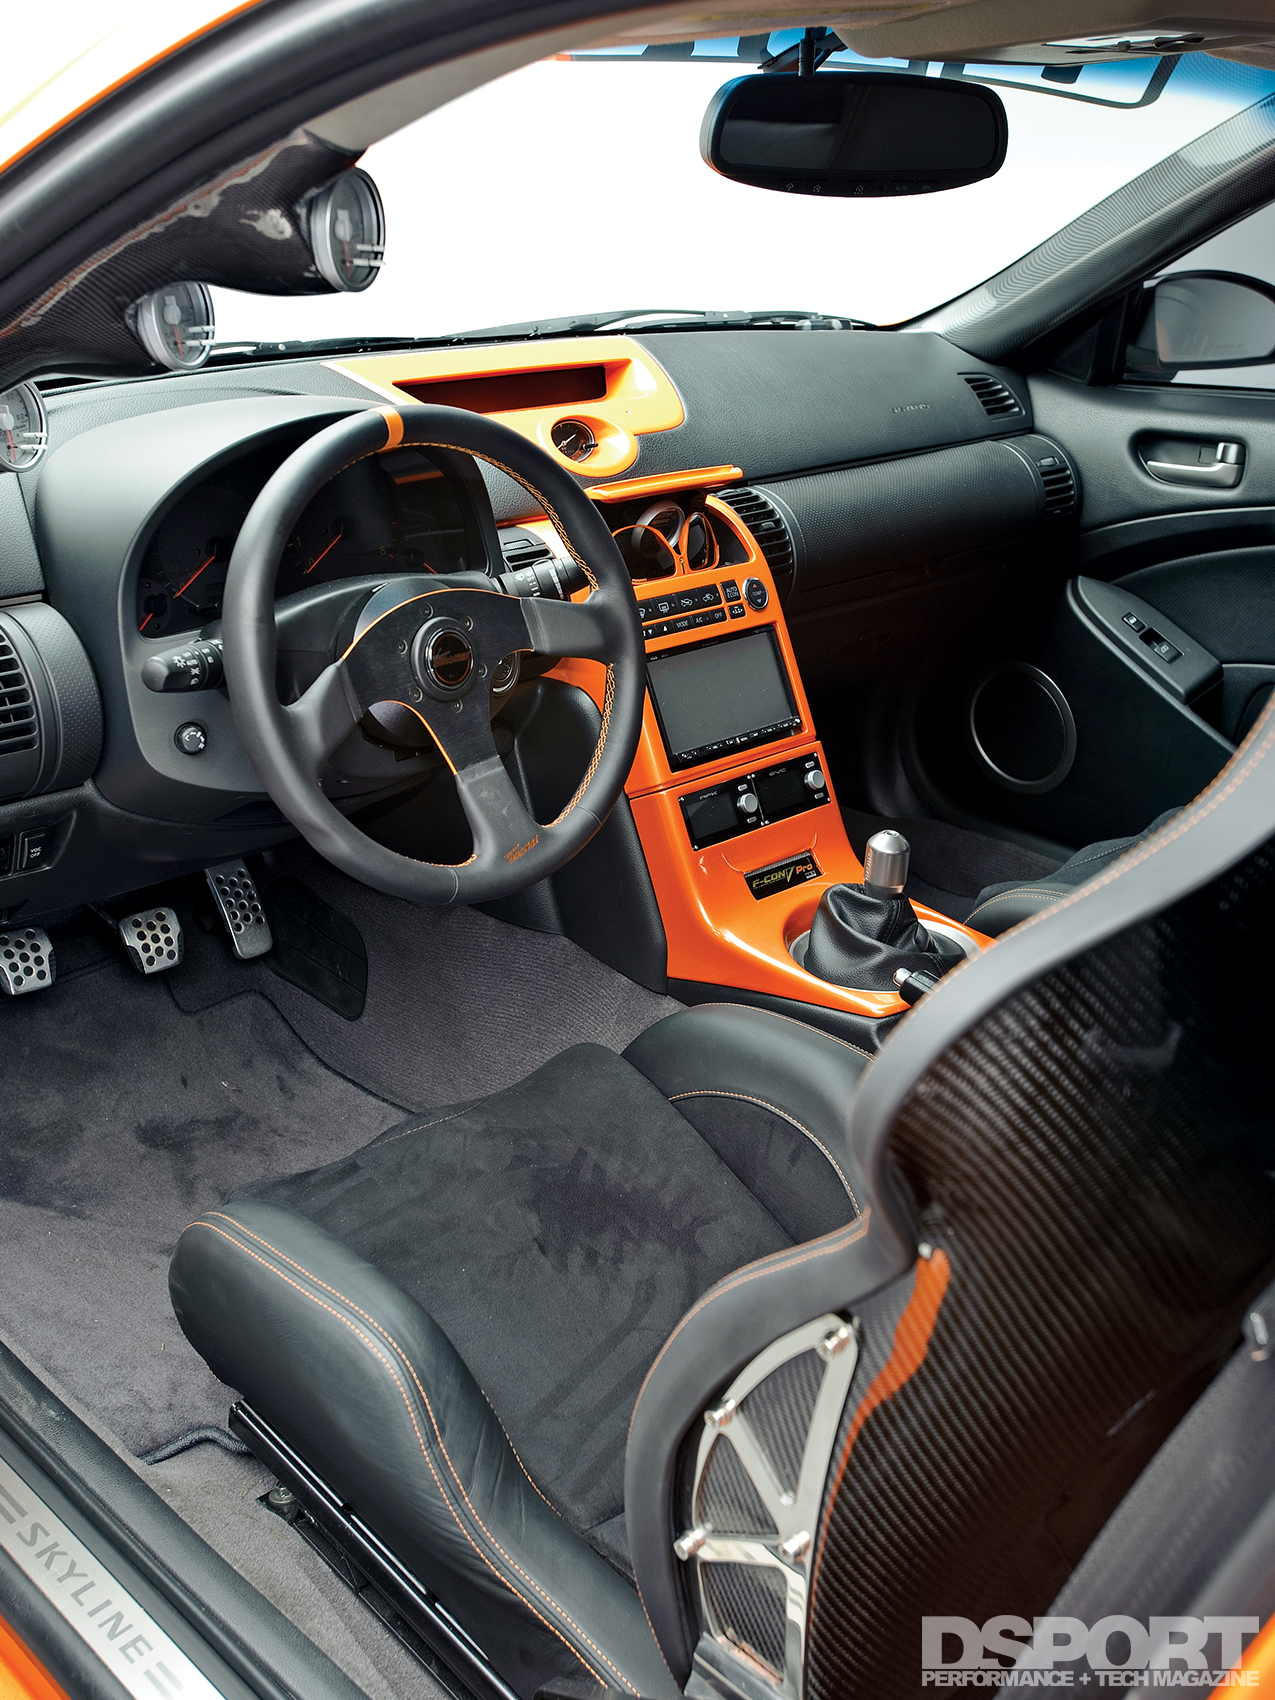 Show N Go Infiniti G35 Has All The Right Stuff